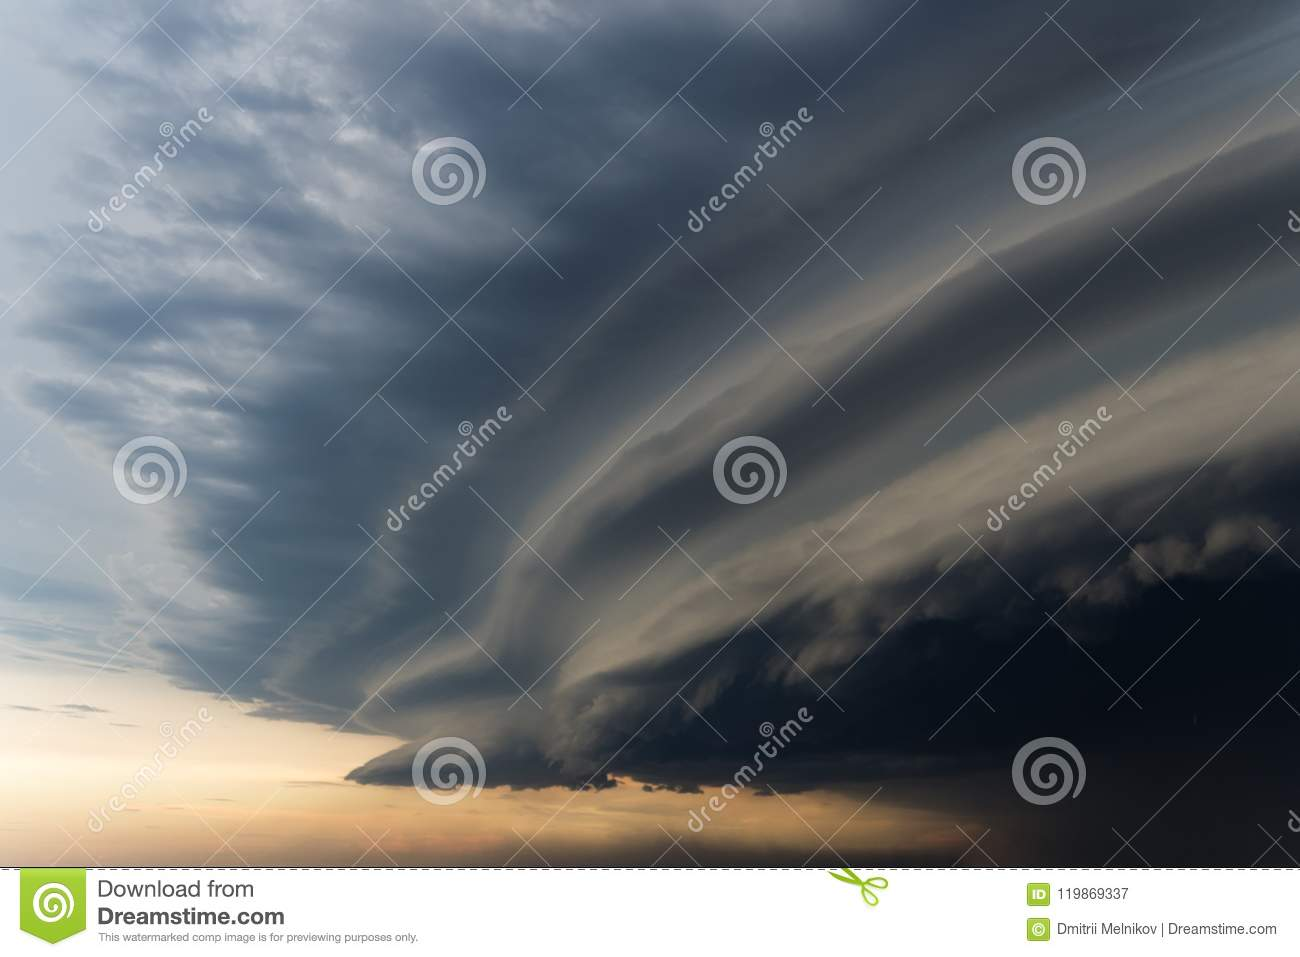 Dramatic rainy sky and dark clouds. Hurricane wind. Strong hurricane over the city. The sky is covered with black storm clouds. Sc